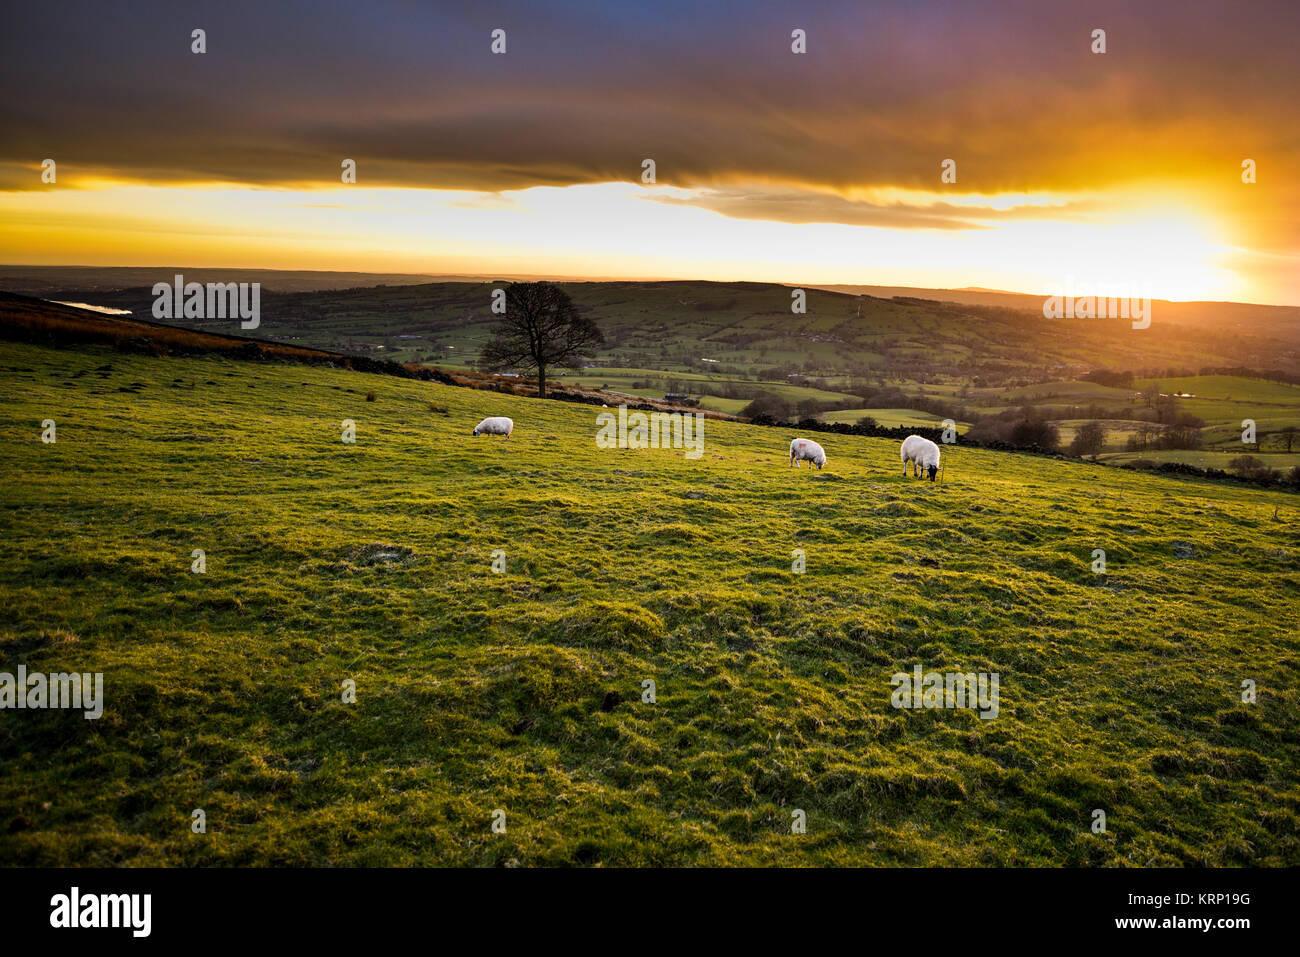 Sheep Grazing At Sunset, With Tittiesworth Reservoir In The Distance, The Roaches / Hen Cloud Landscape, The Peak - Stock Image